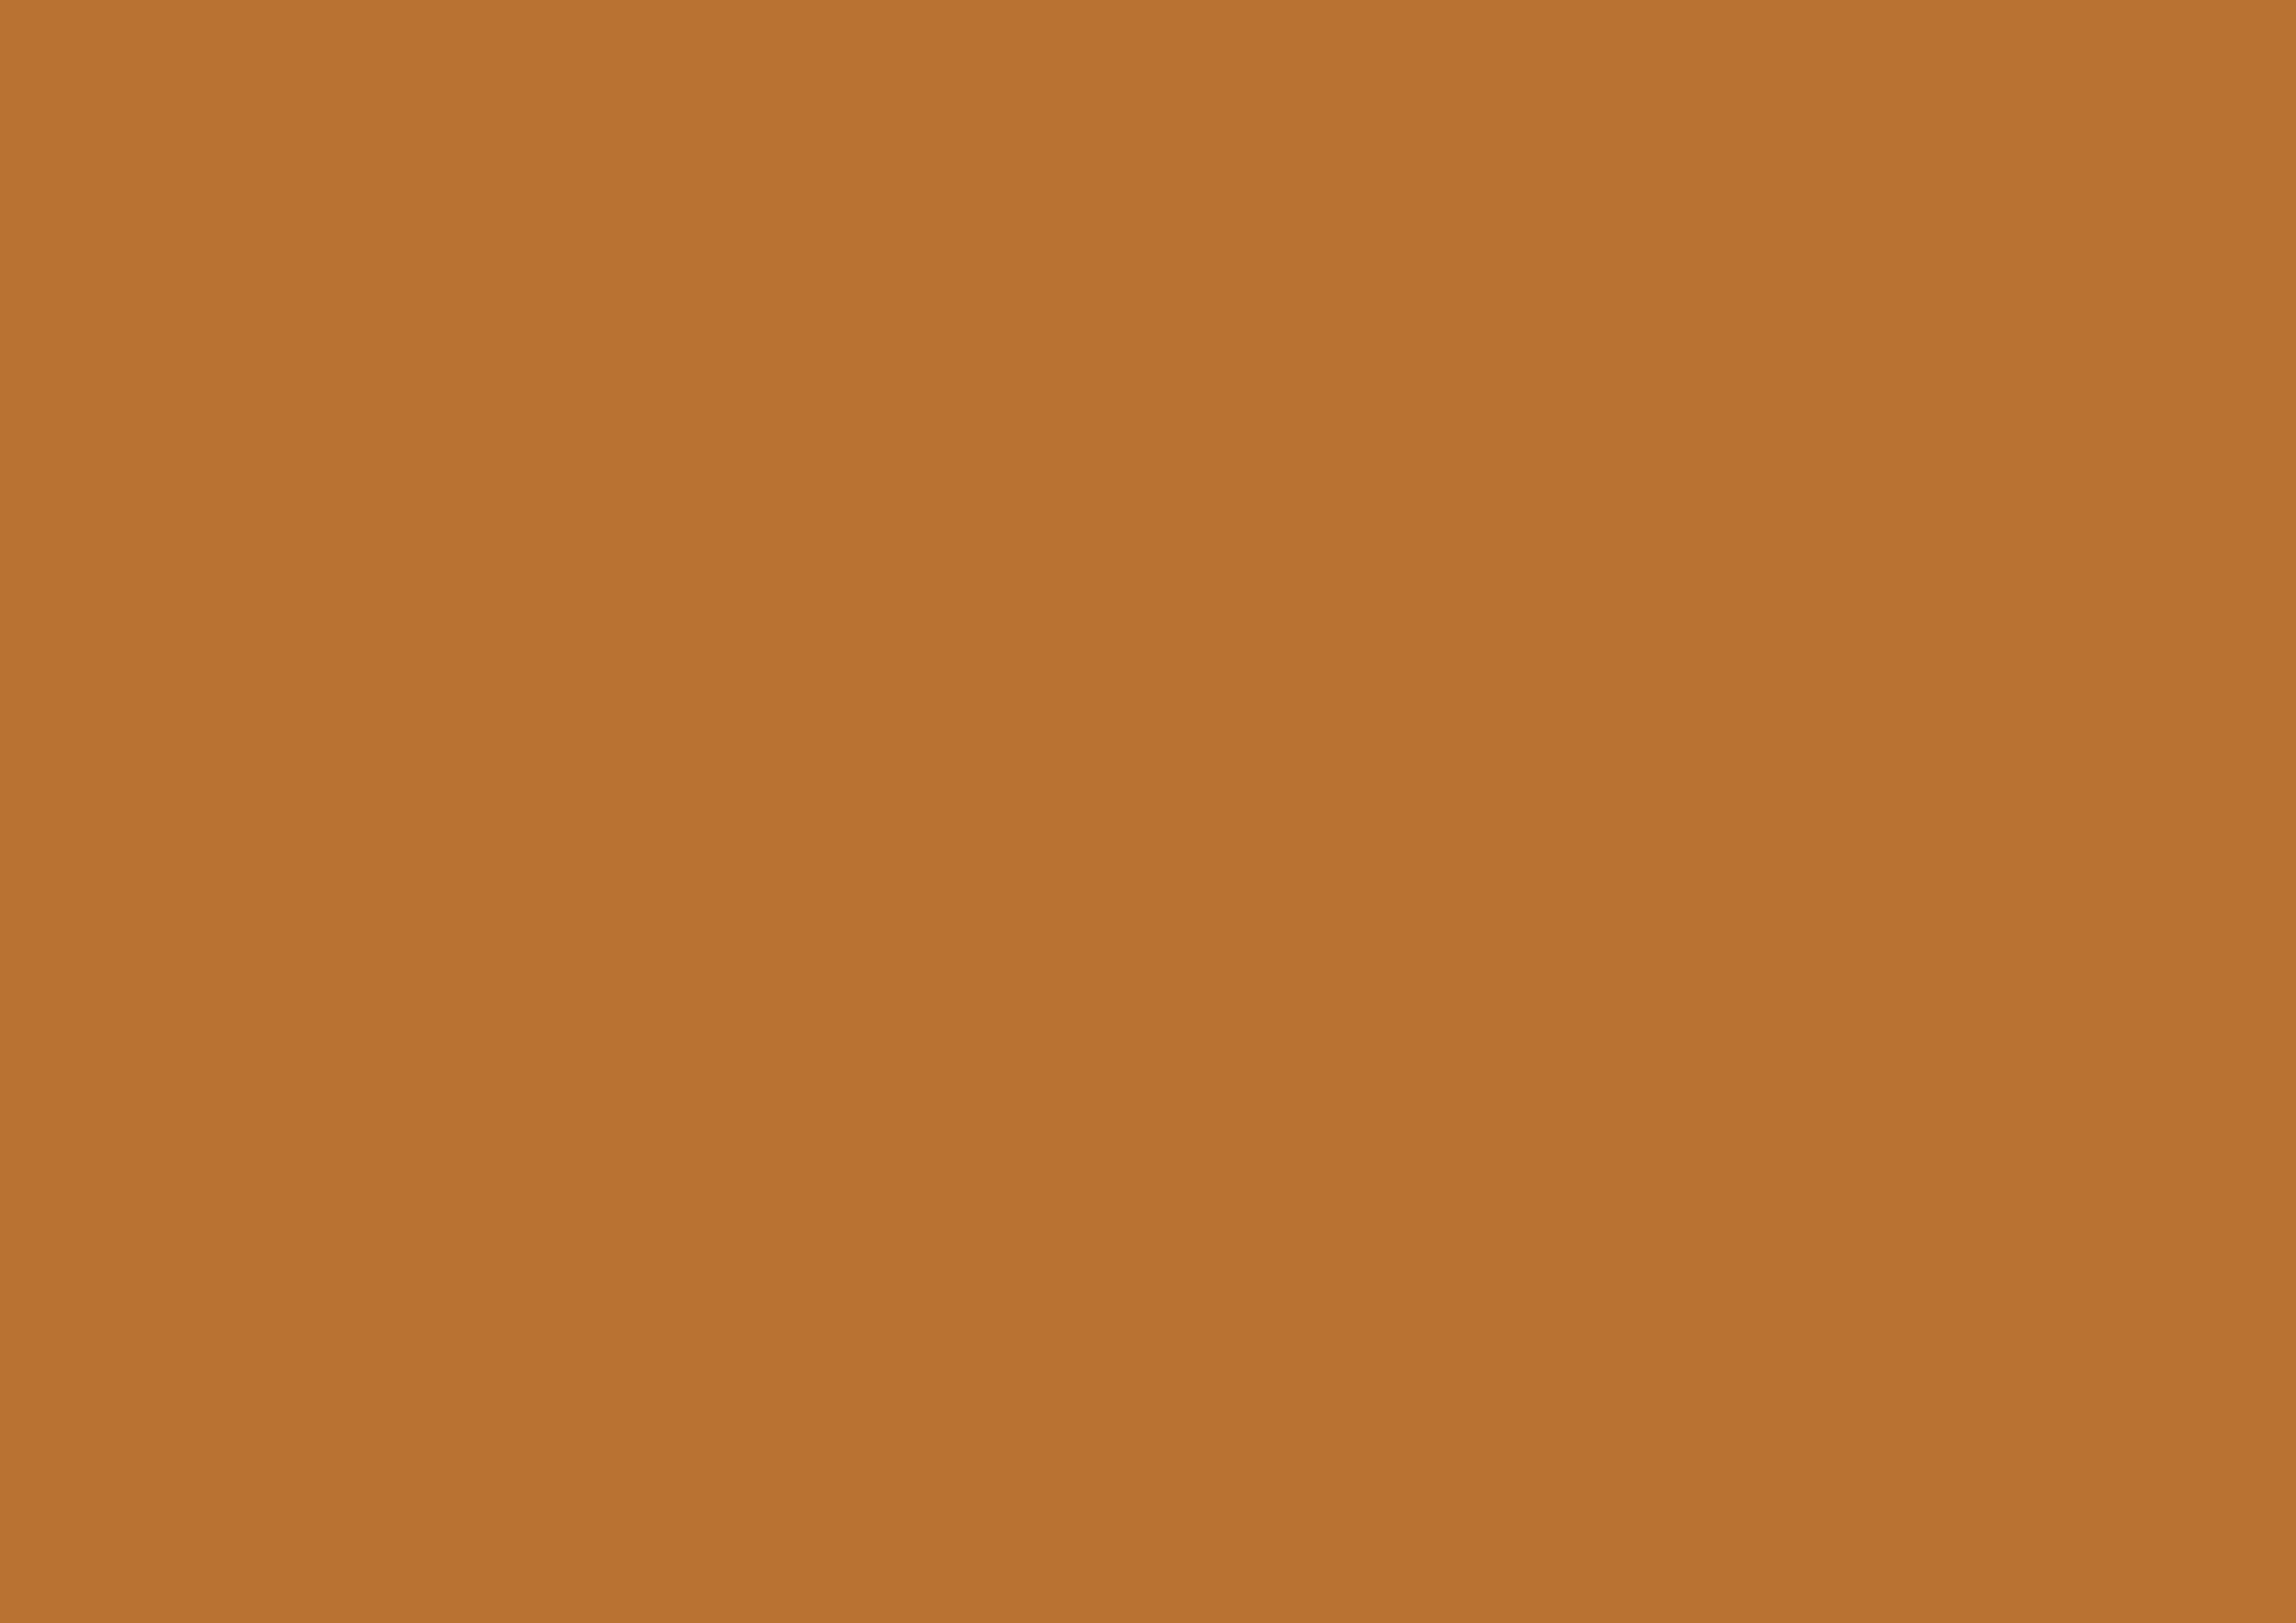 3508x2480 Copper Solid Color Background